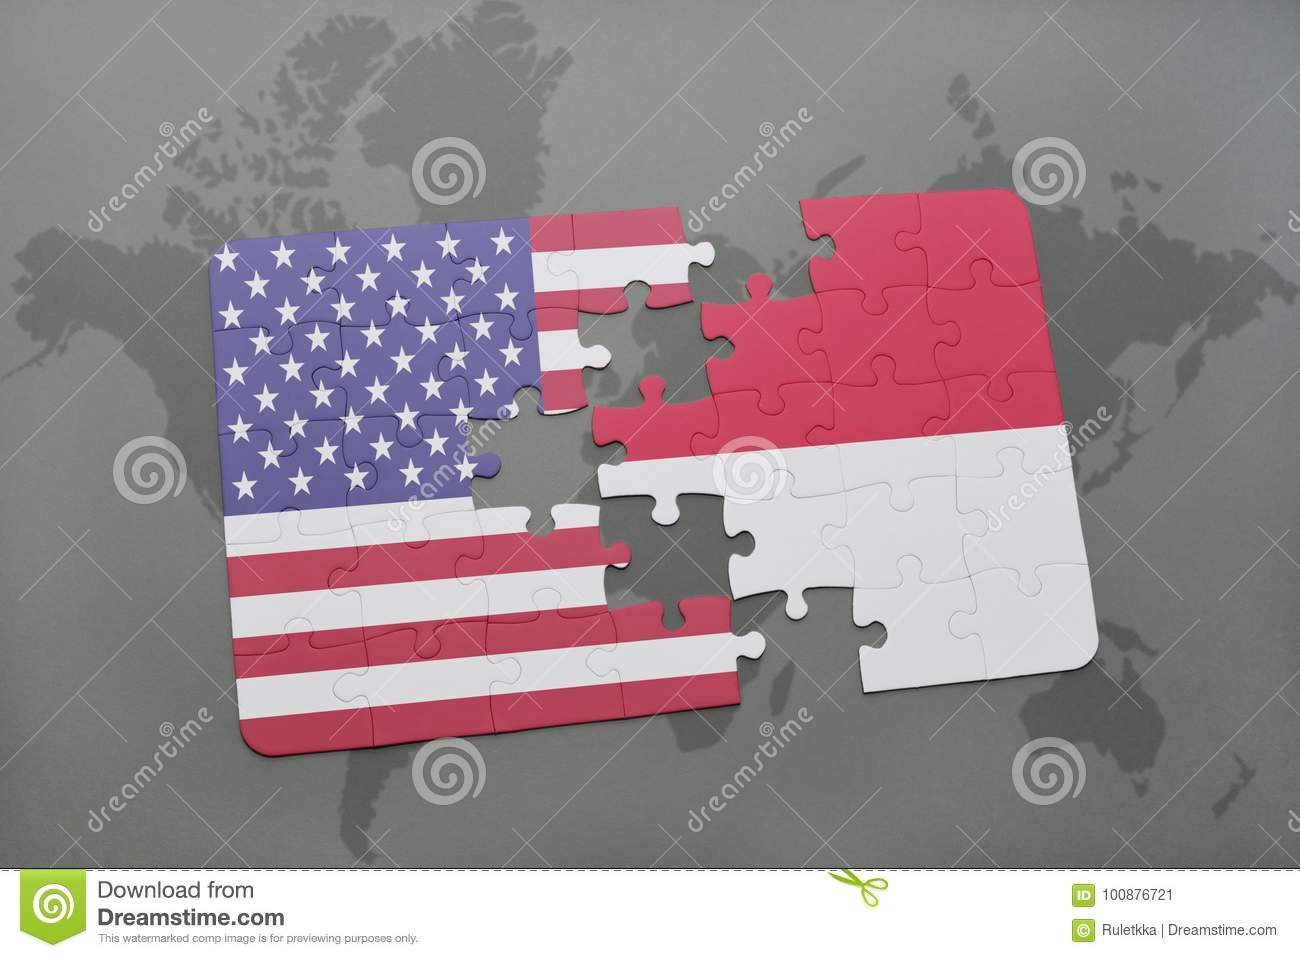 puzzle with the national flag of united states of america and indonesia on a world map background